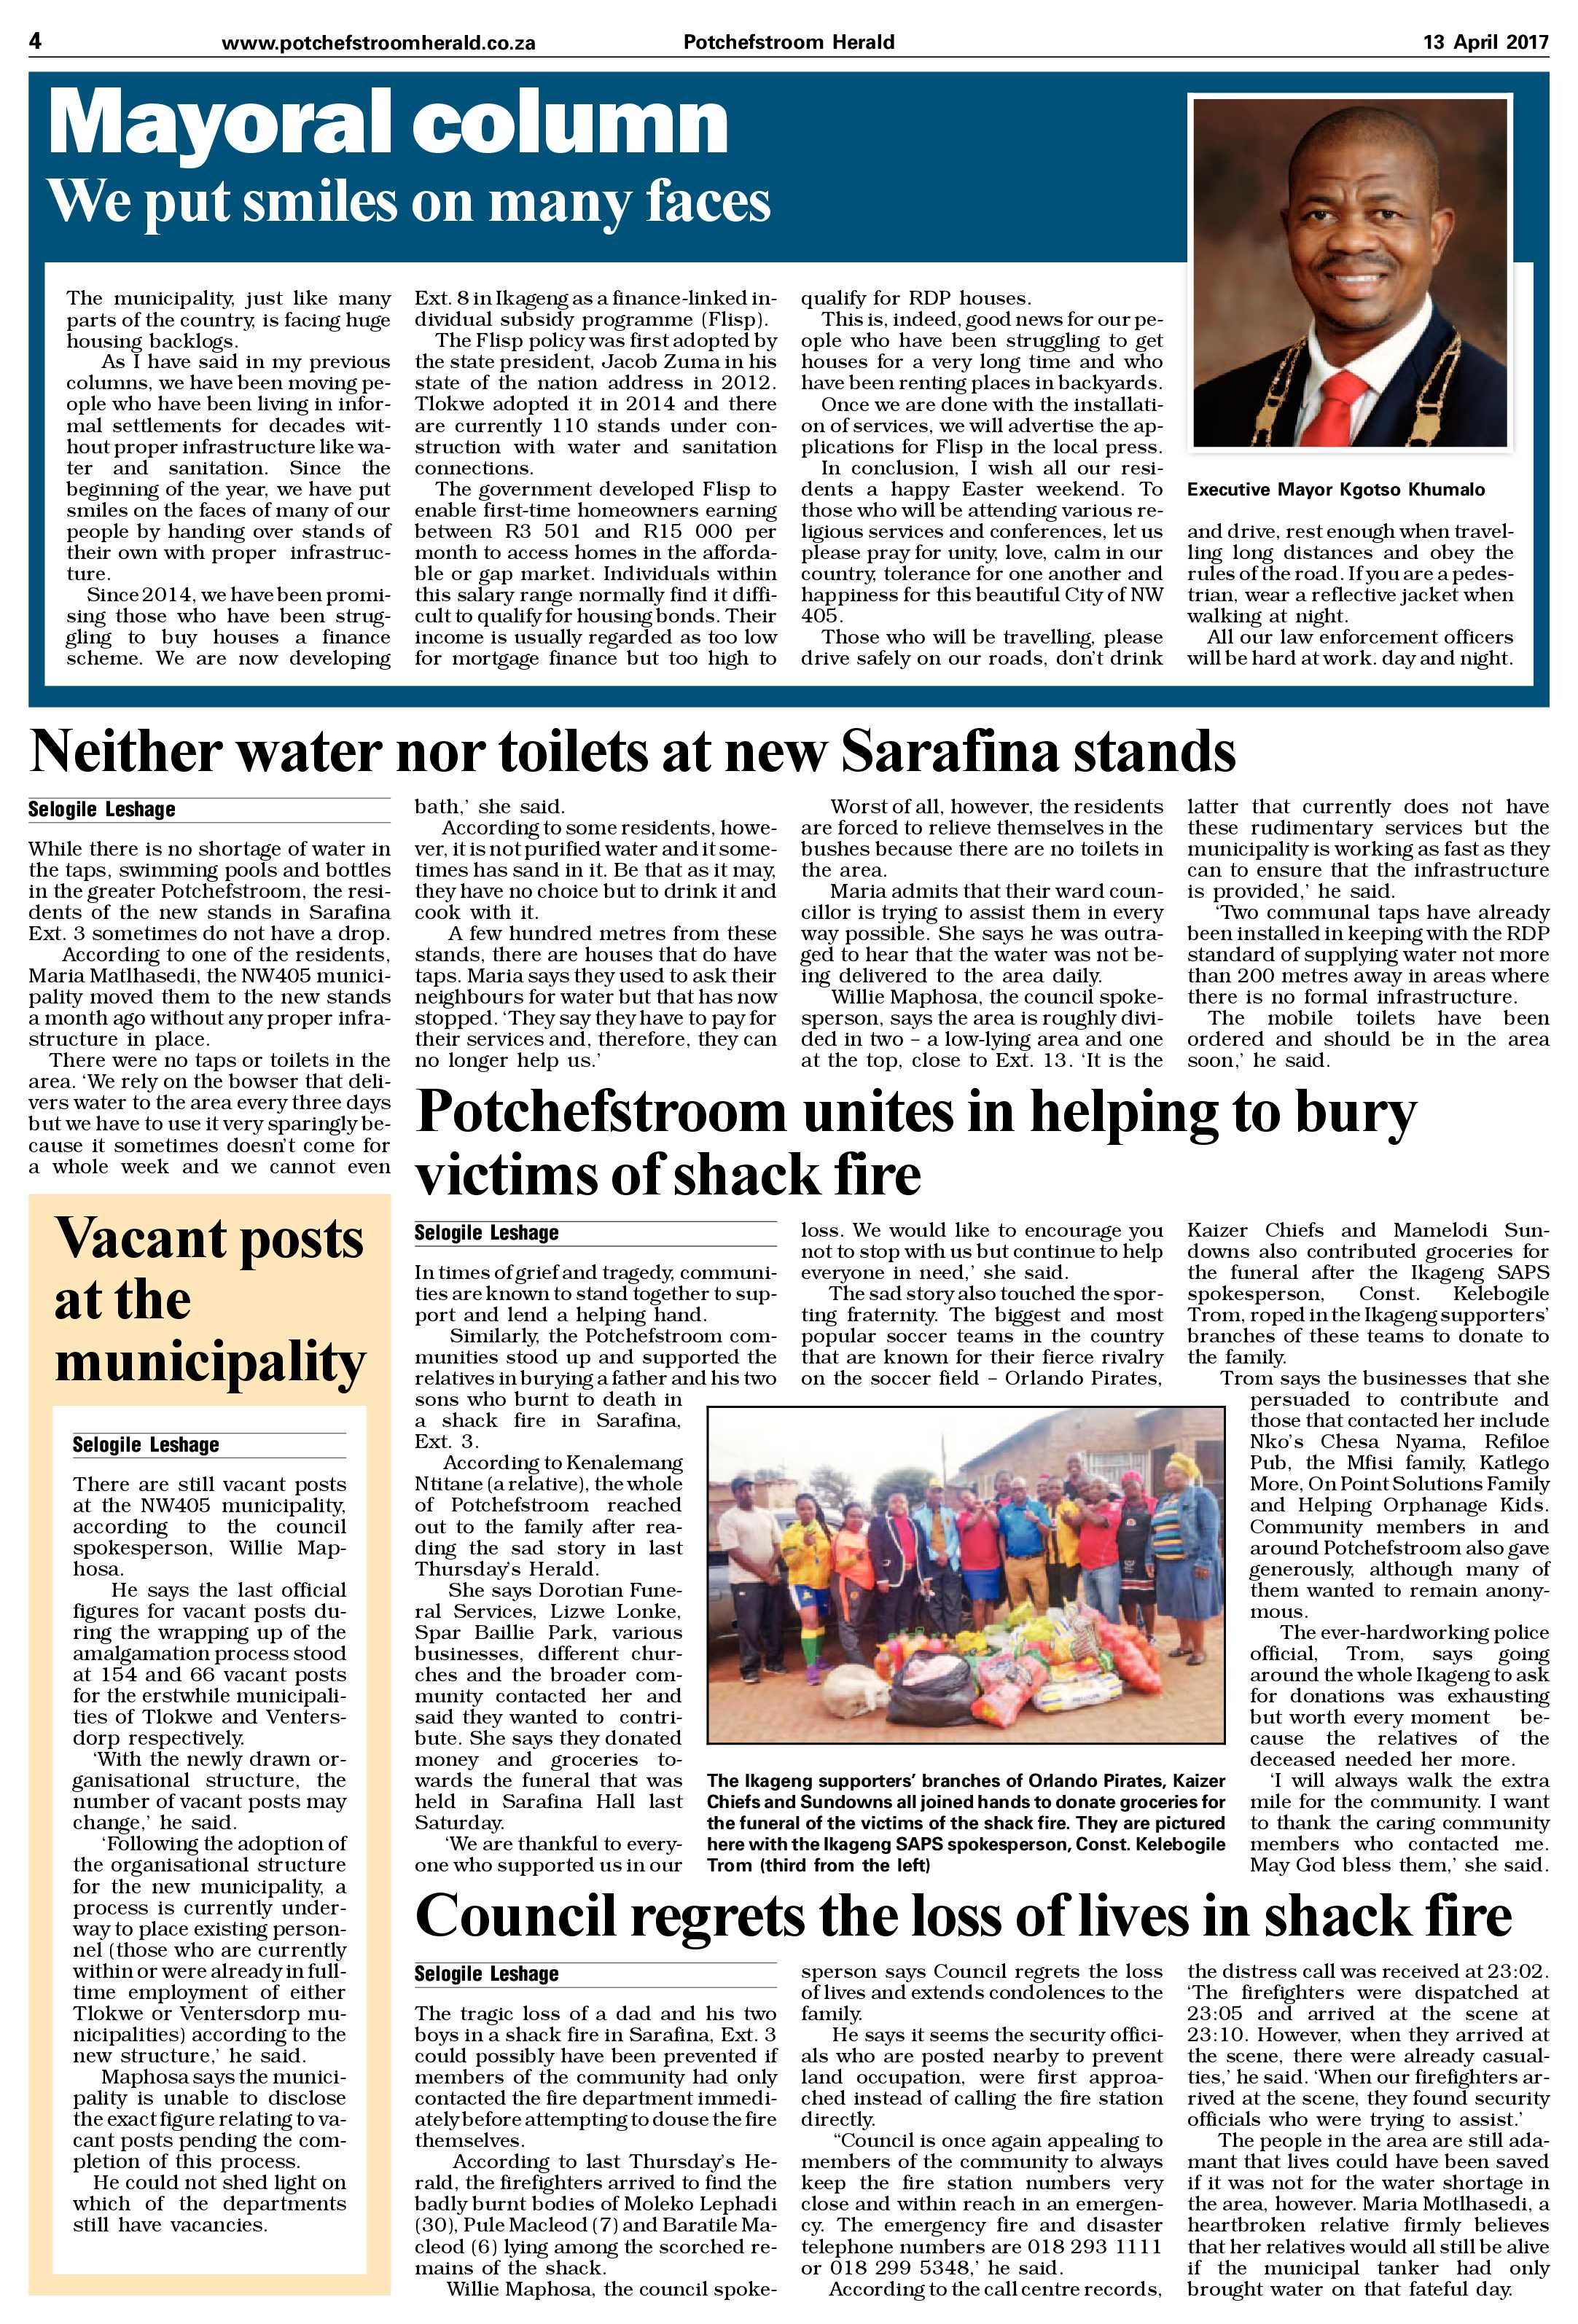 13-april-2017-epapers-page-4